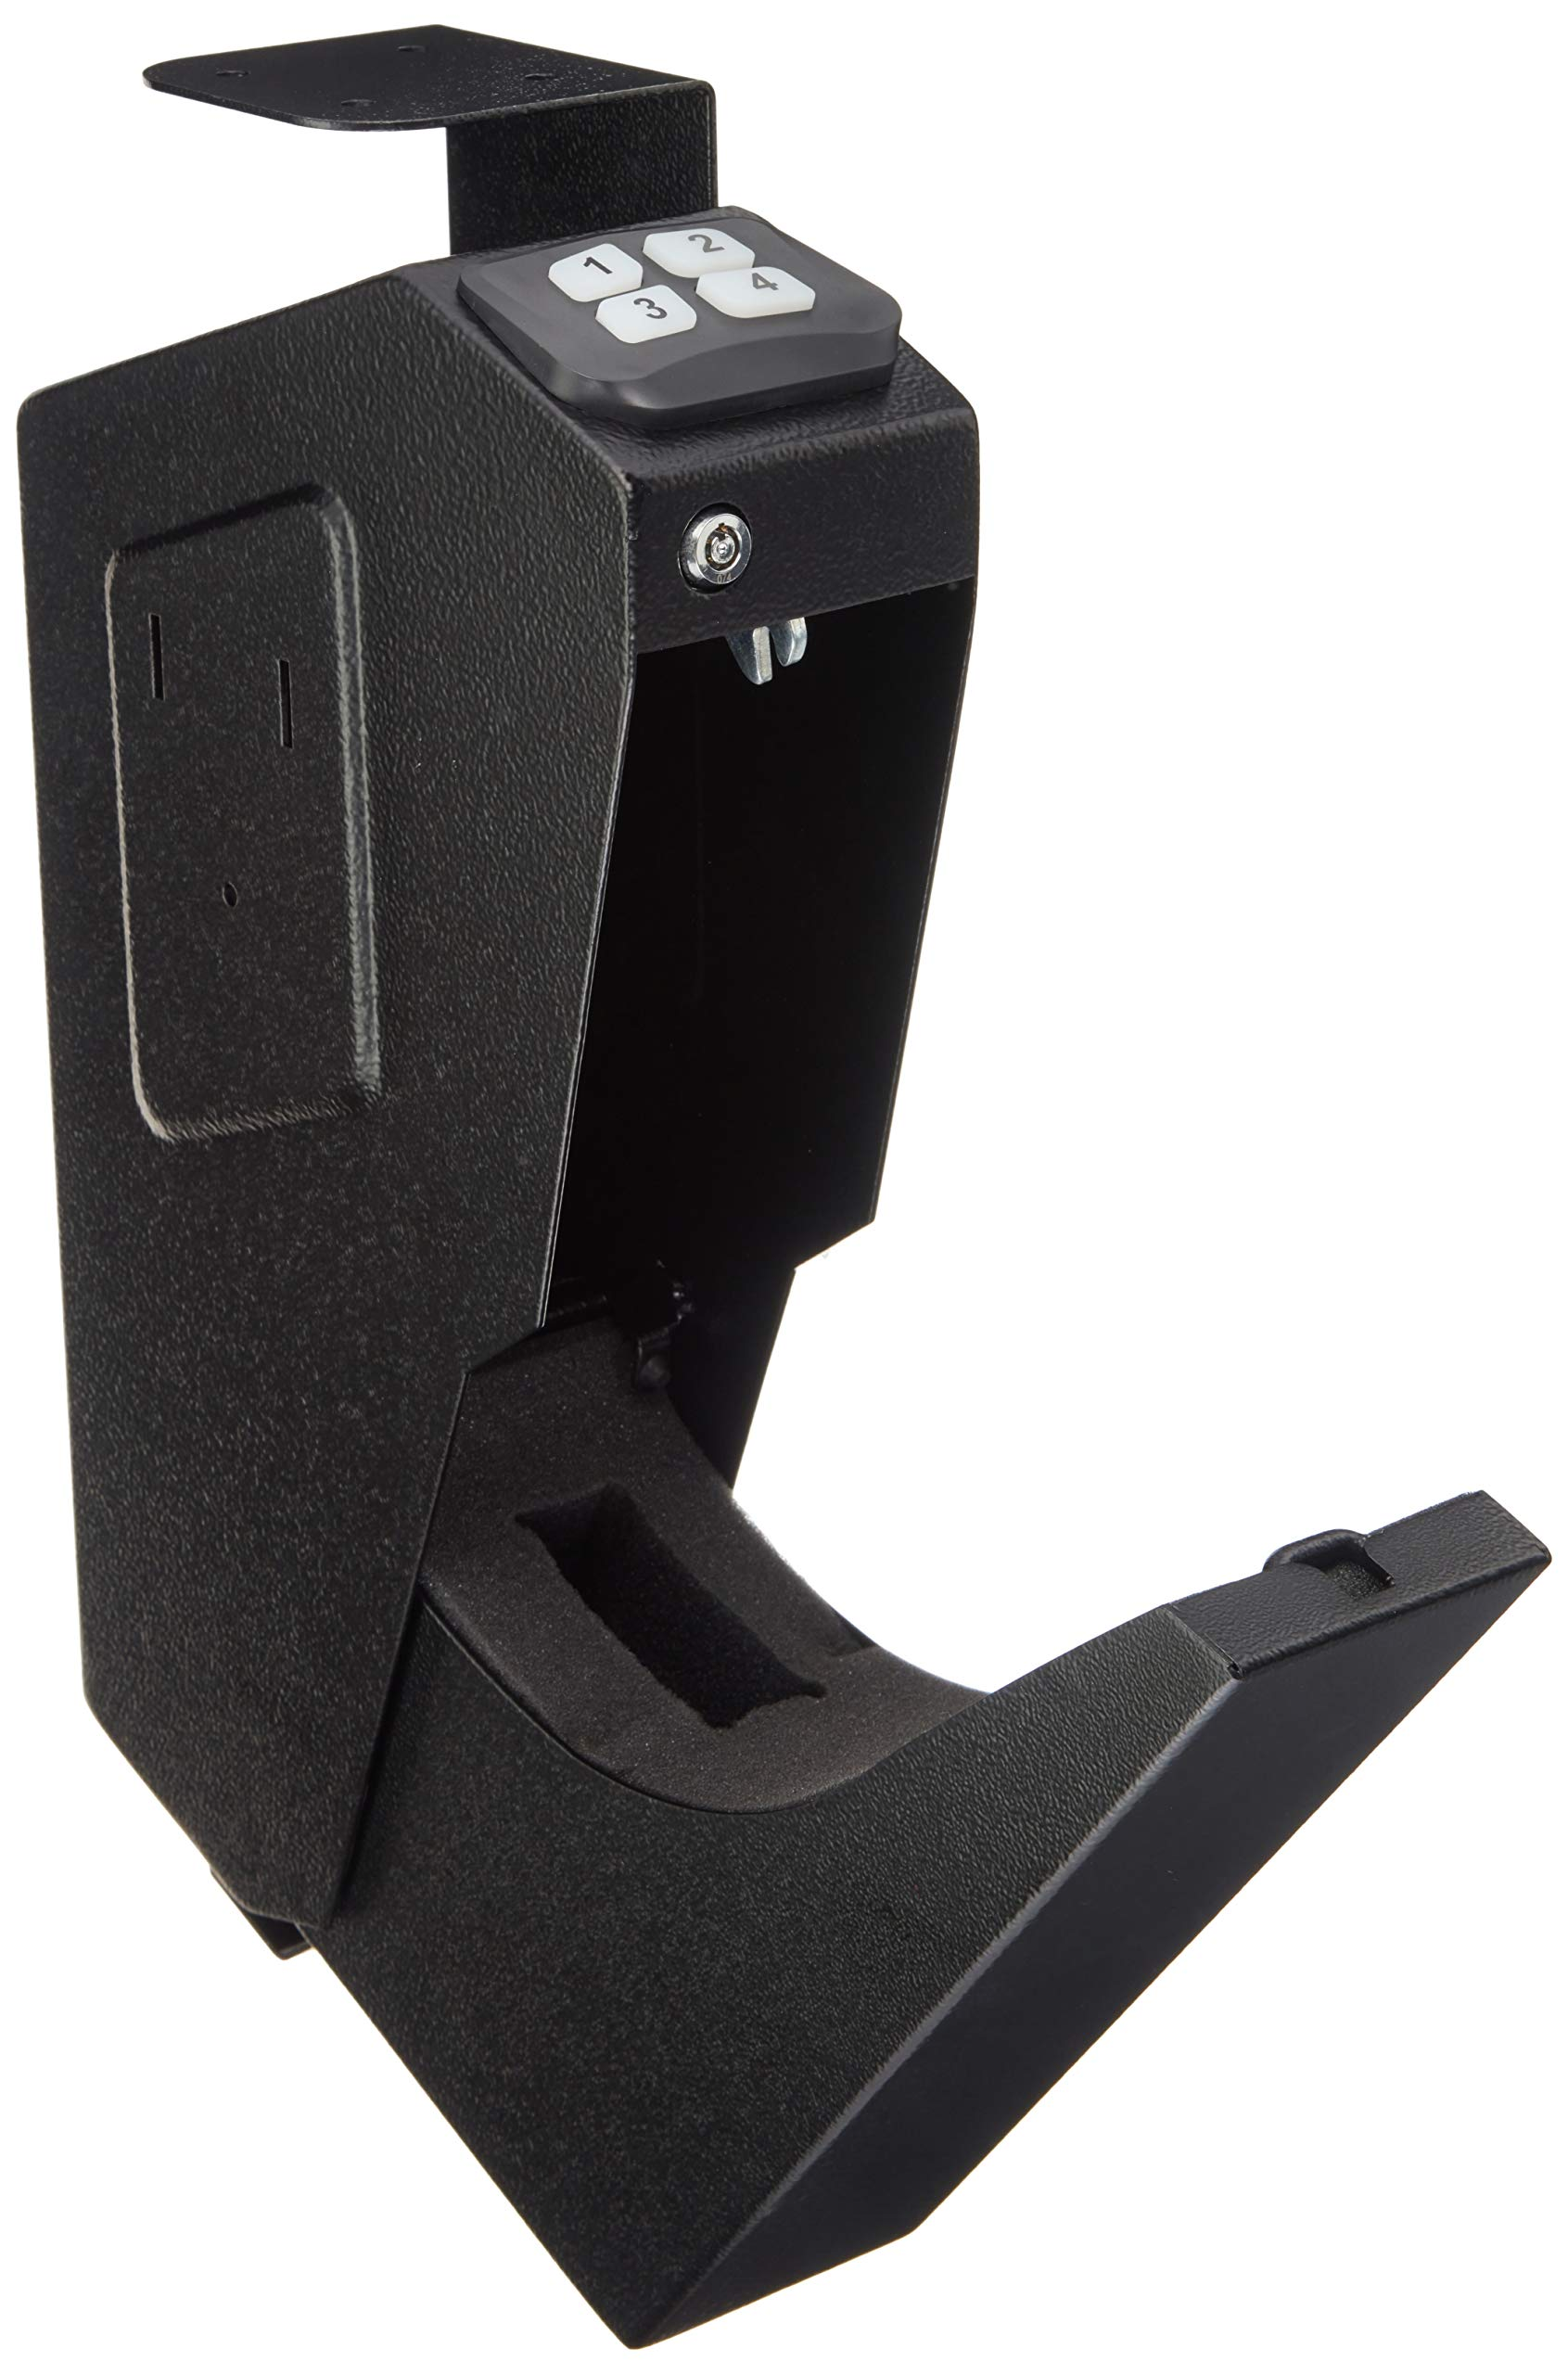 AmazonBasics Mounted Firearm Safety Device by AmazonBasics